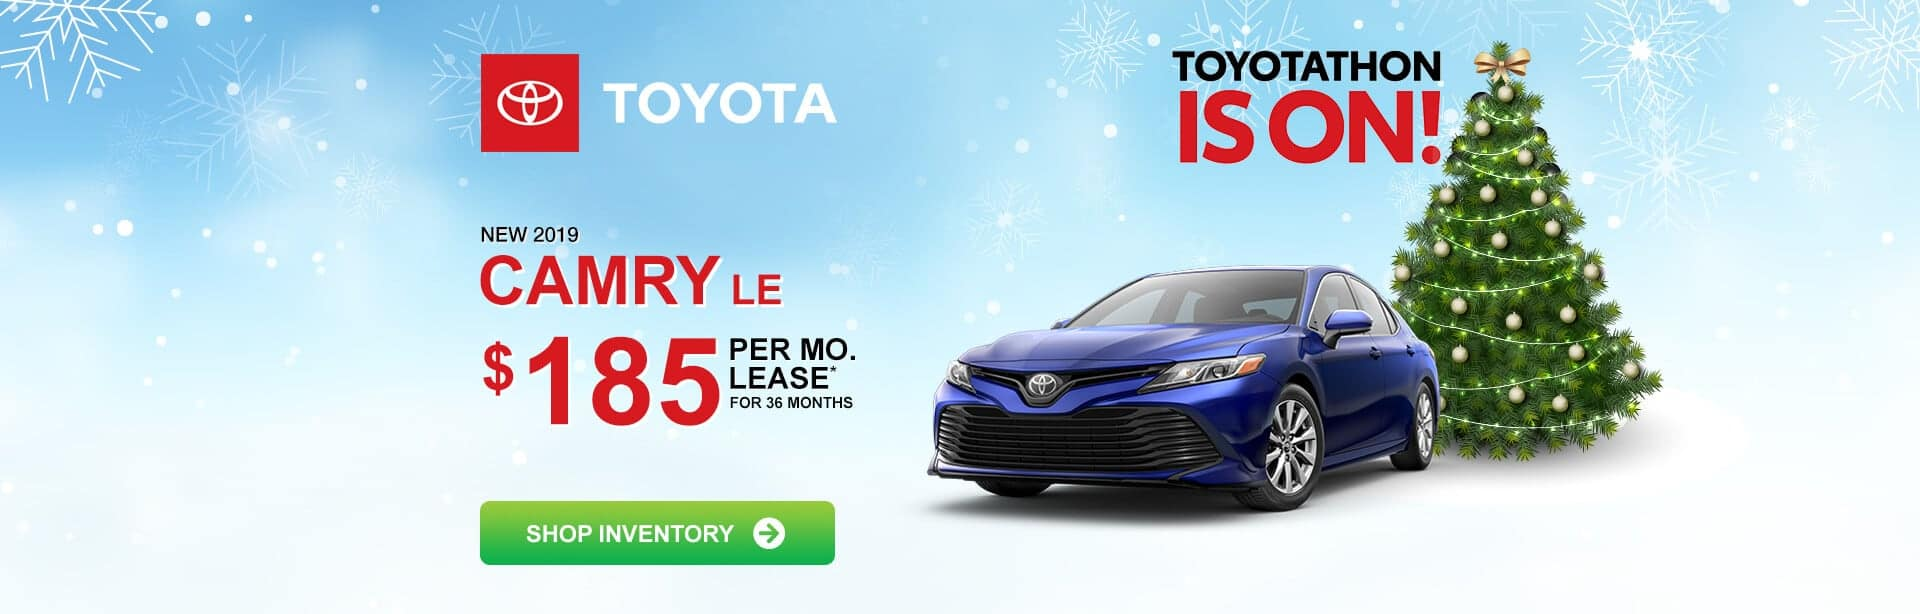 Toyota Camry Lease Special near Indianapolis, Indiana during Toyotathon.